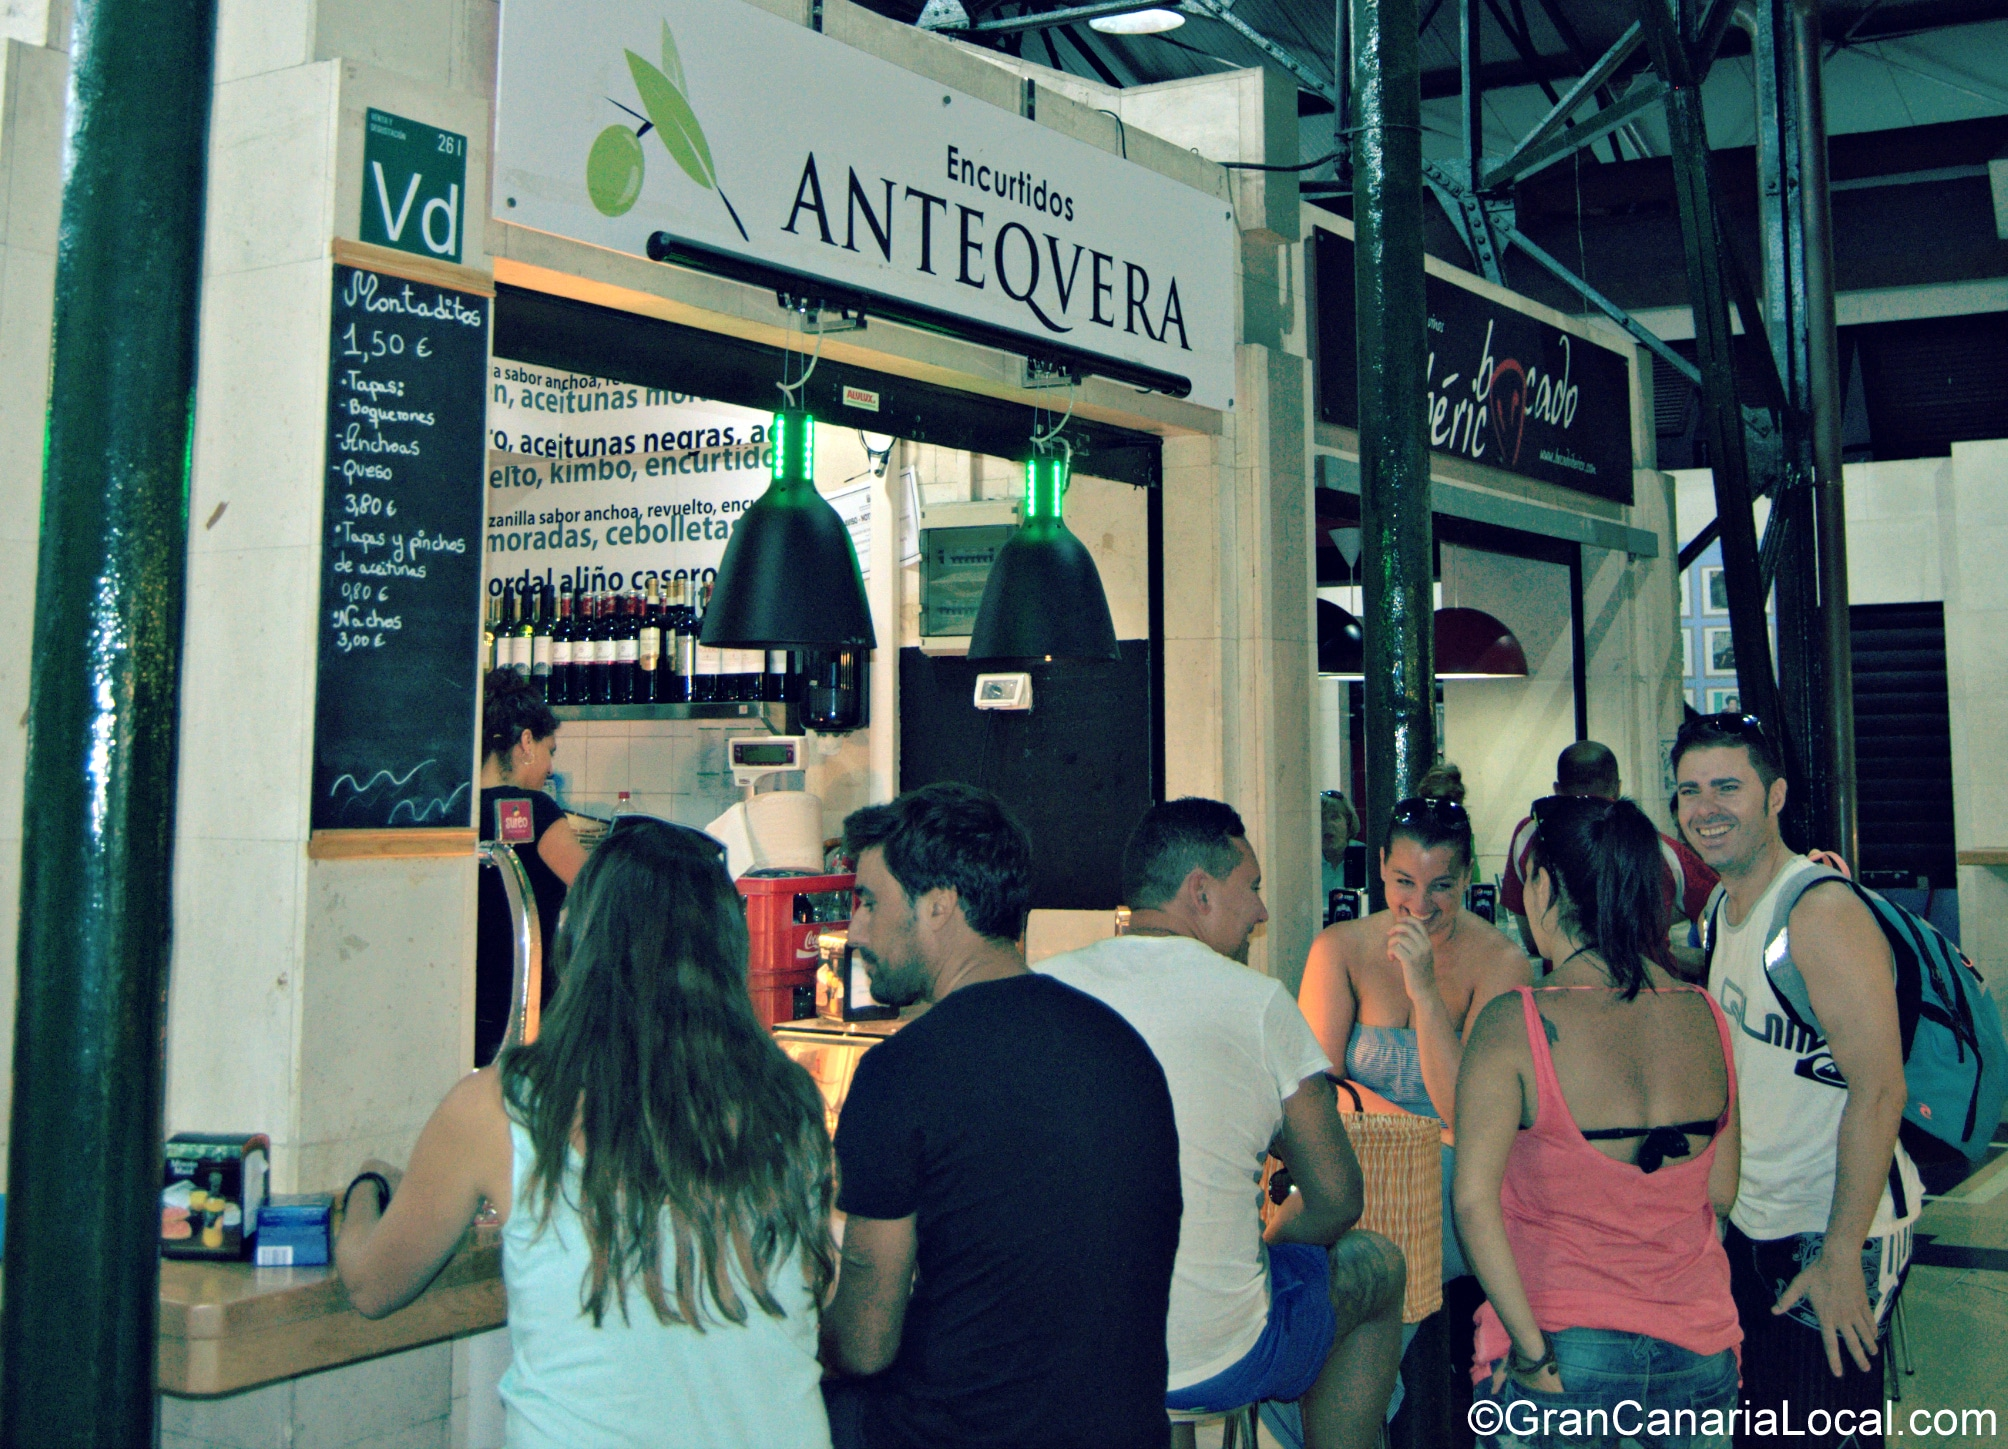 The Mercado del Puerto's Encurtidos Antequera is a popular meeting point